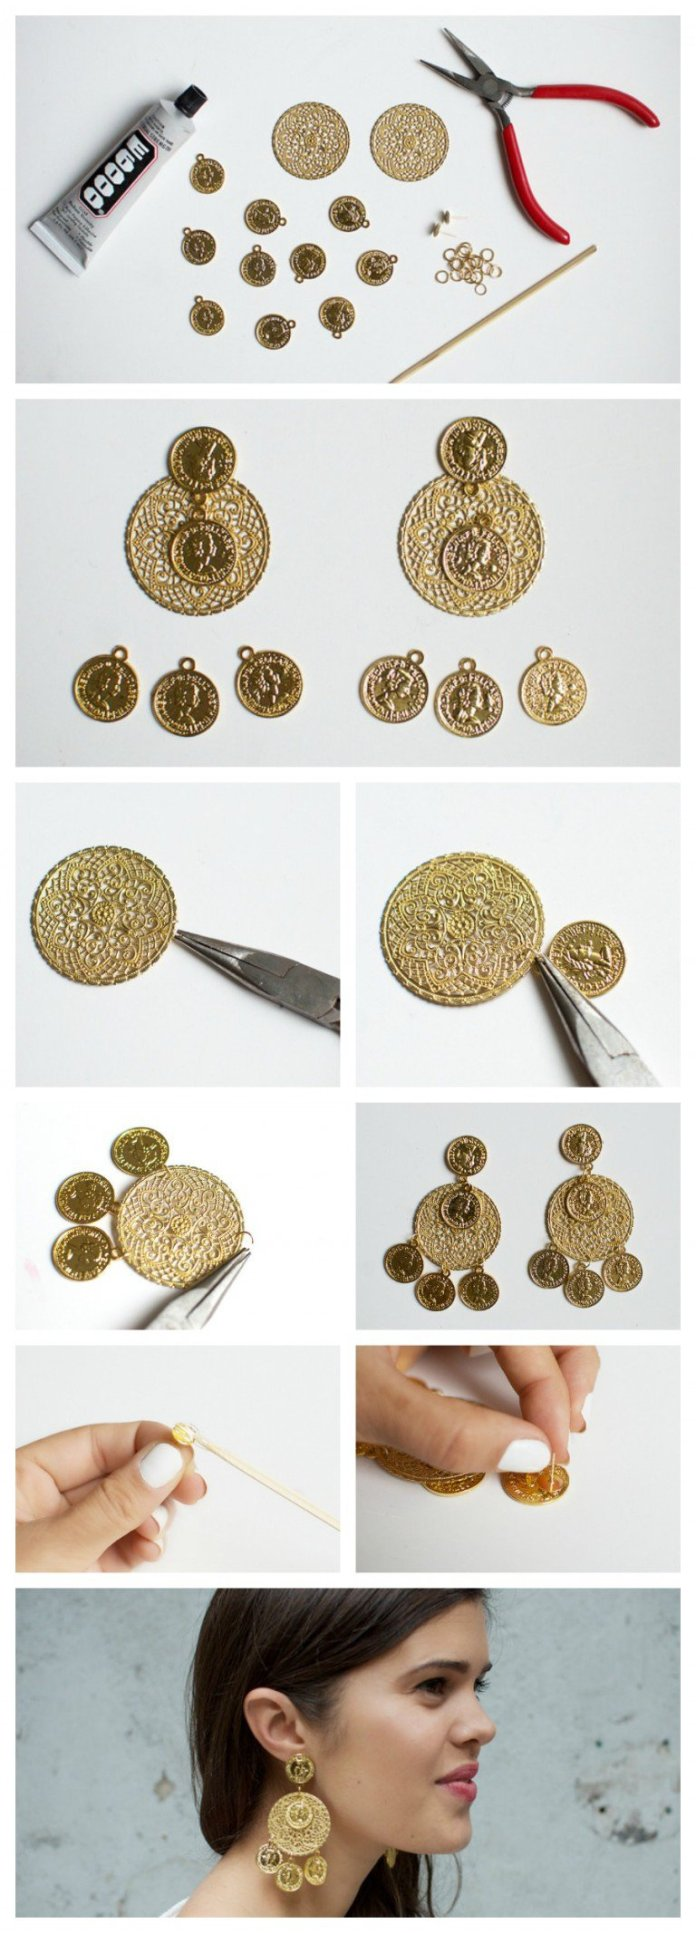 Custom made earring ideas